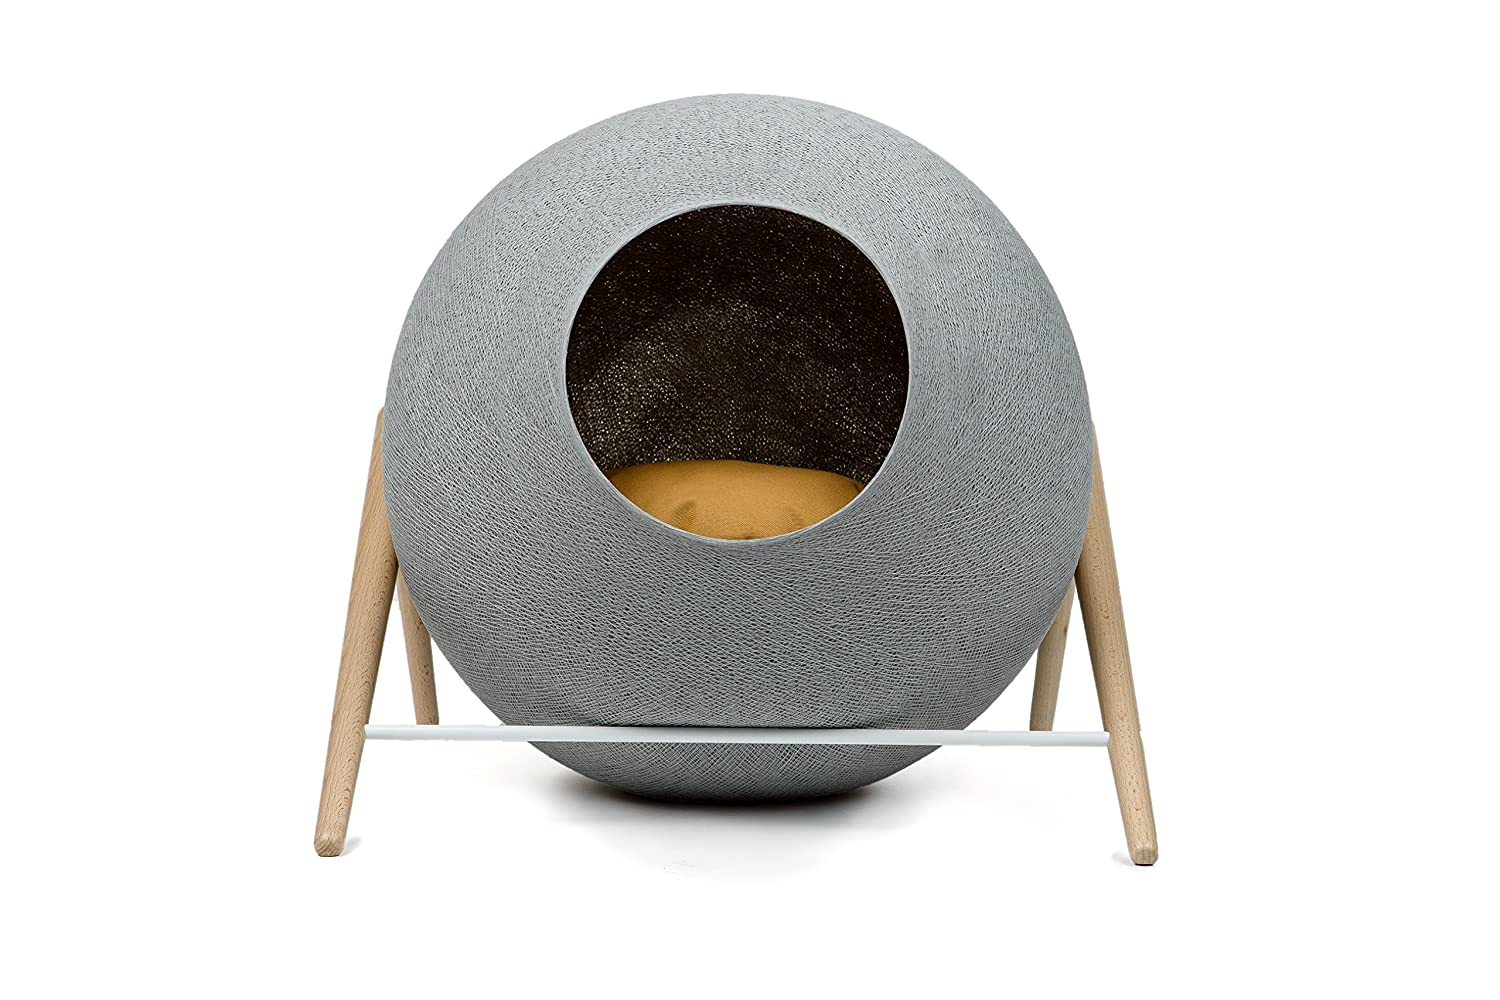 Meyou Paris - the BALL, bed, cozy shelter and claw sharpener - Light grey cocoon / camel pillow / white metal frame